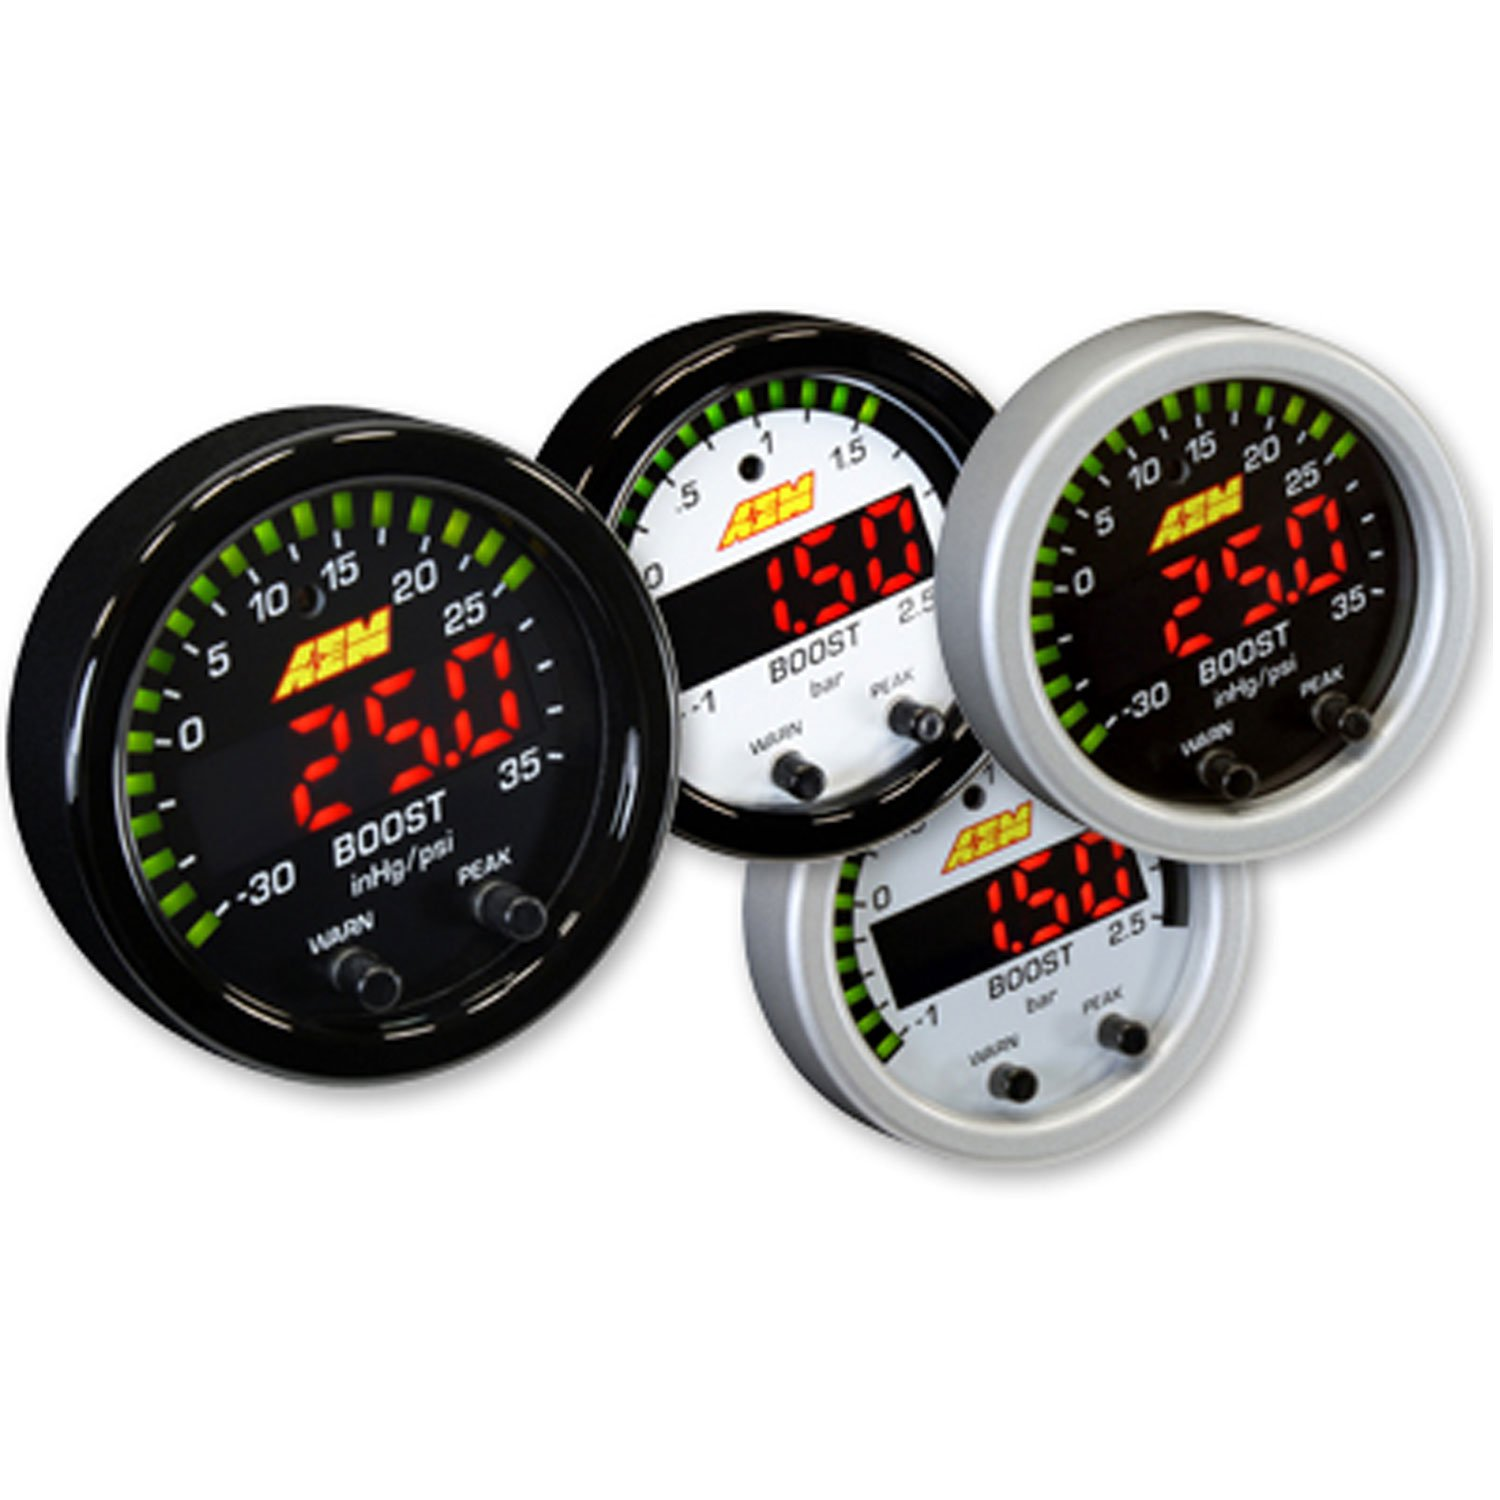 AEM 30-0306 X-SERIES TURBO BOOST PRESSURE DISPLAY GAUGE 35PSI + WHITE FACE KIT